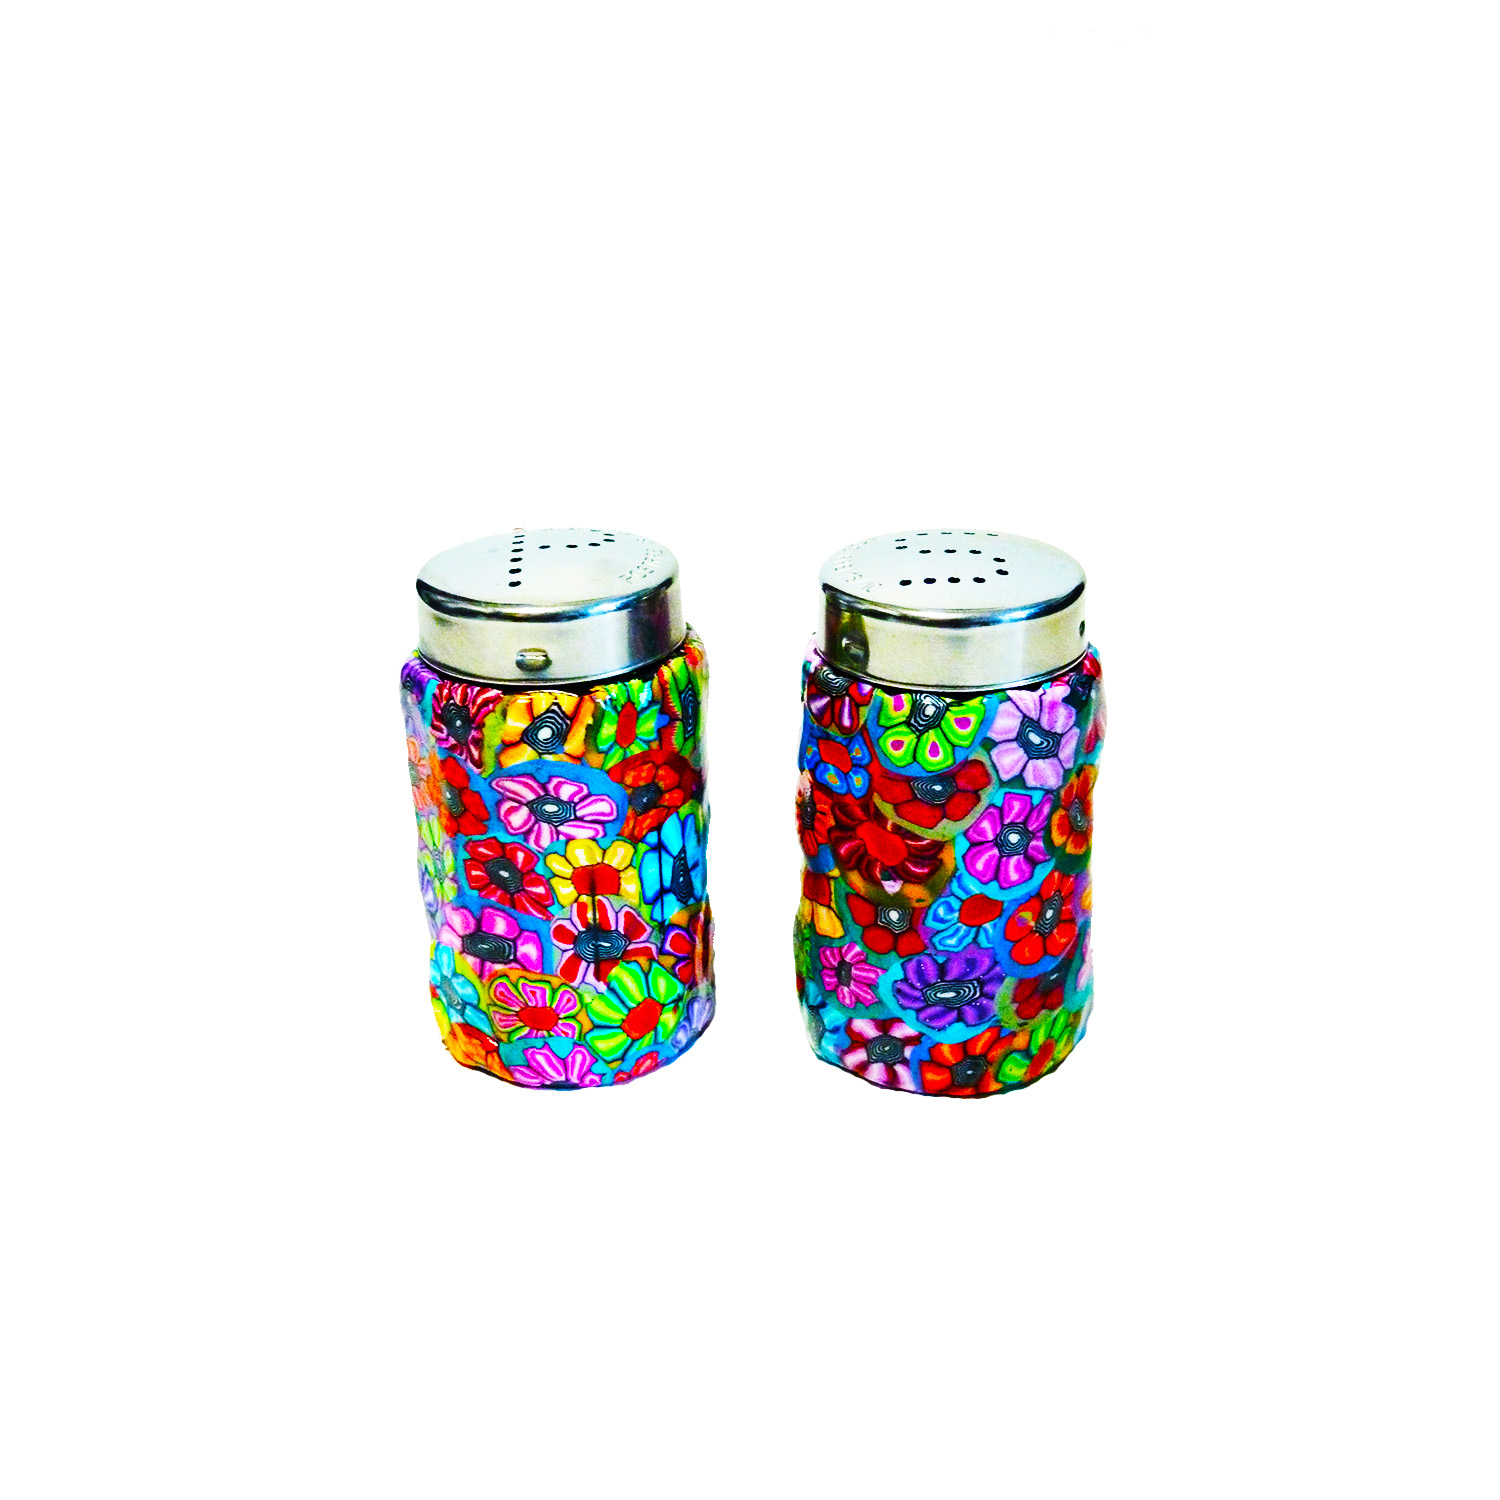 Colorful and Unique Glass and Polymer Clay Salt And Pepper Shakers